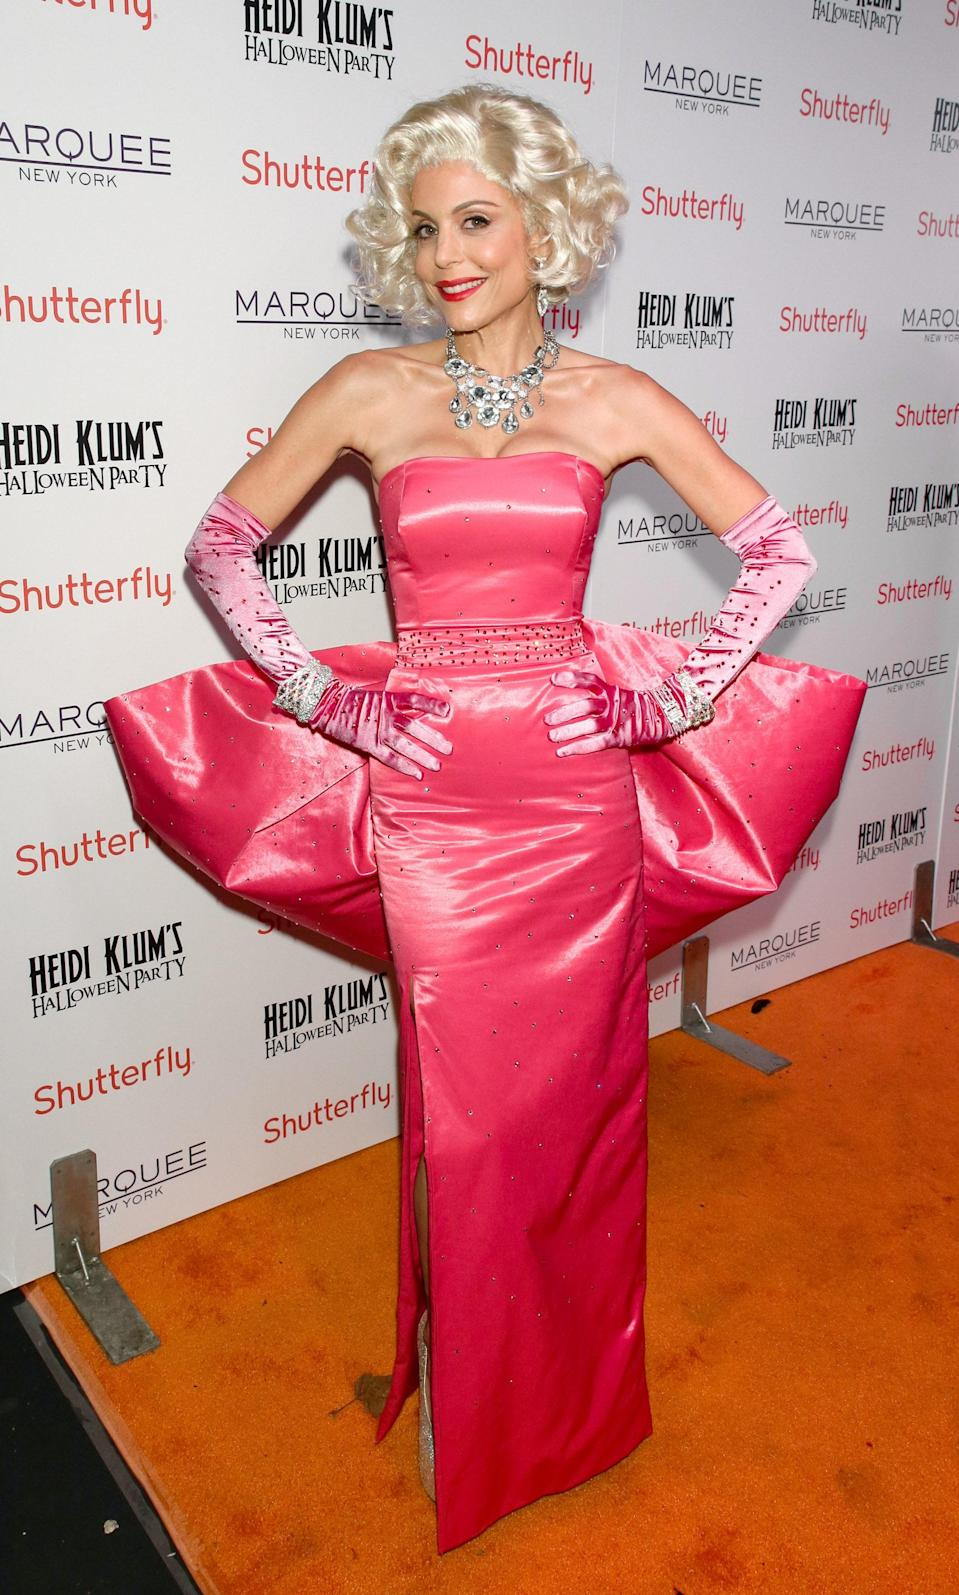 The <em>Real Housewives</em> star channeled her inner Marilyn from <em>Diamonds Are a Girl's Best Friend</em>.